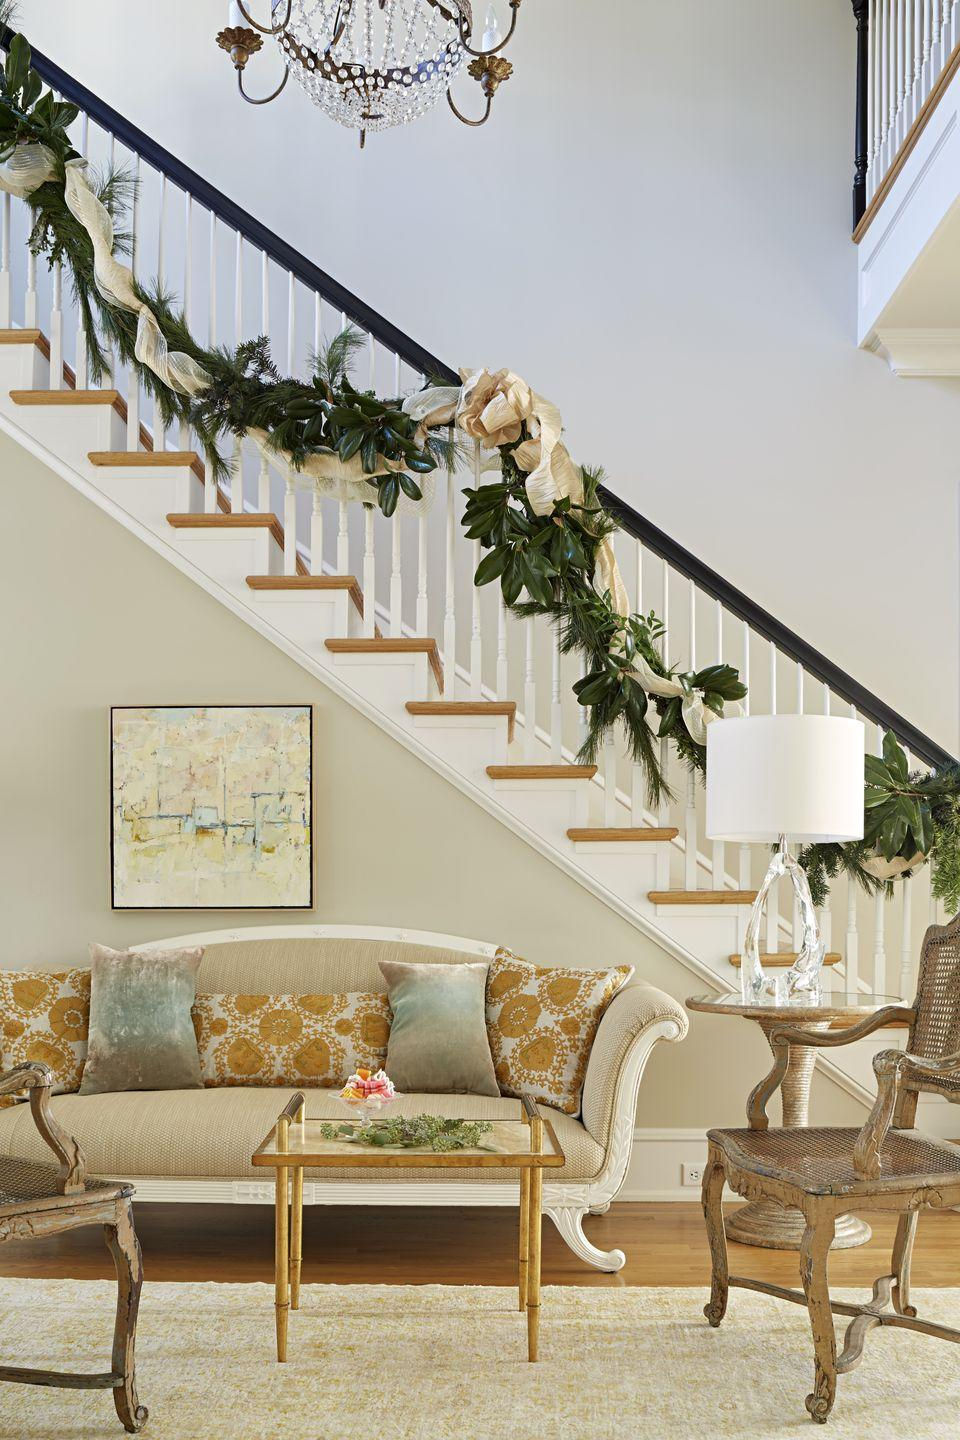 """<p>A honey-colored palette in this design by <a href=""""https://janiemolster.com/"""" rel=""""nofollow noopener"""" target=""""_blank"""" data-ylk=""""slk:Janie Molster"""" class=""""link rapid-noclick-resp"""">Janie Molster</a> is complemented by a natural garland that's weaved with silky ribbon. </p>"""